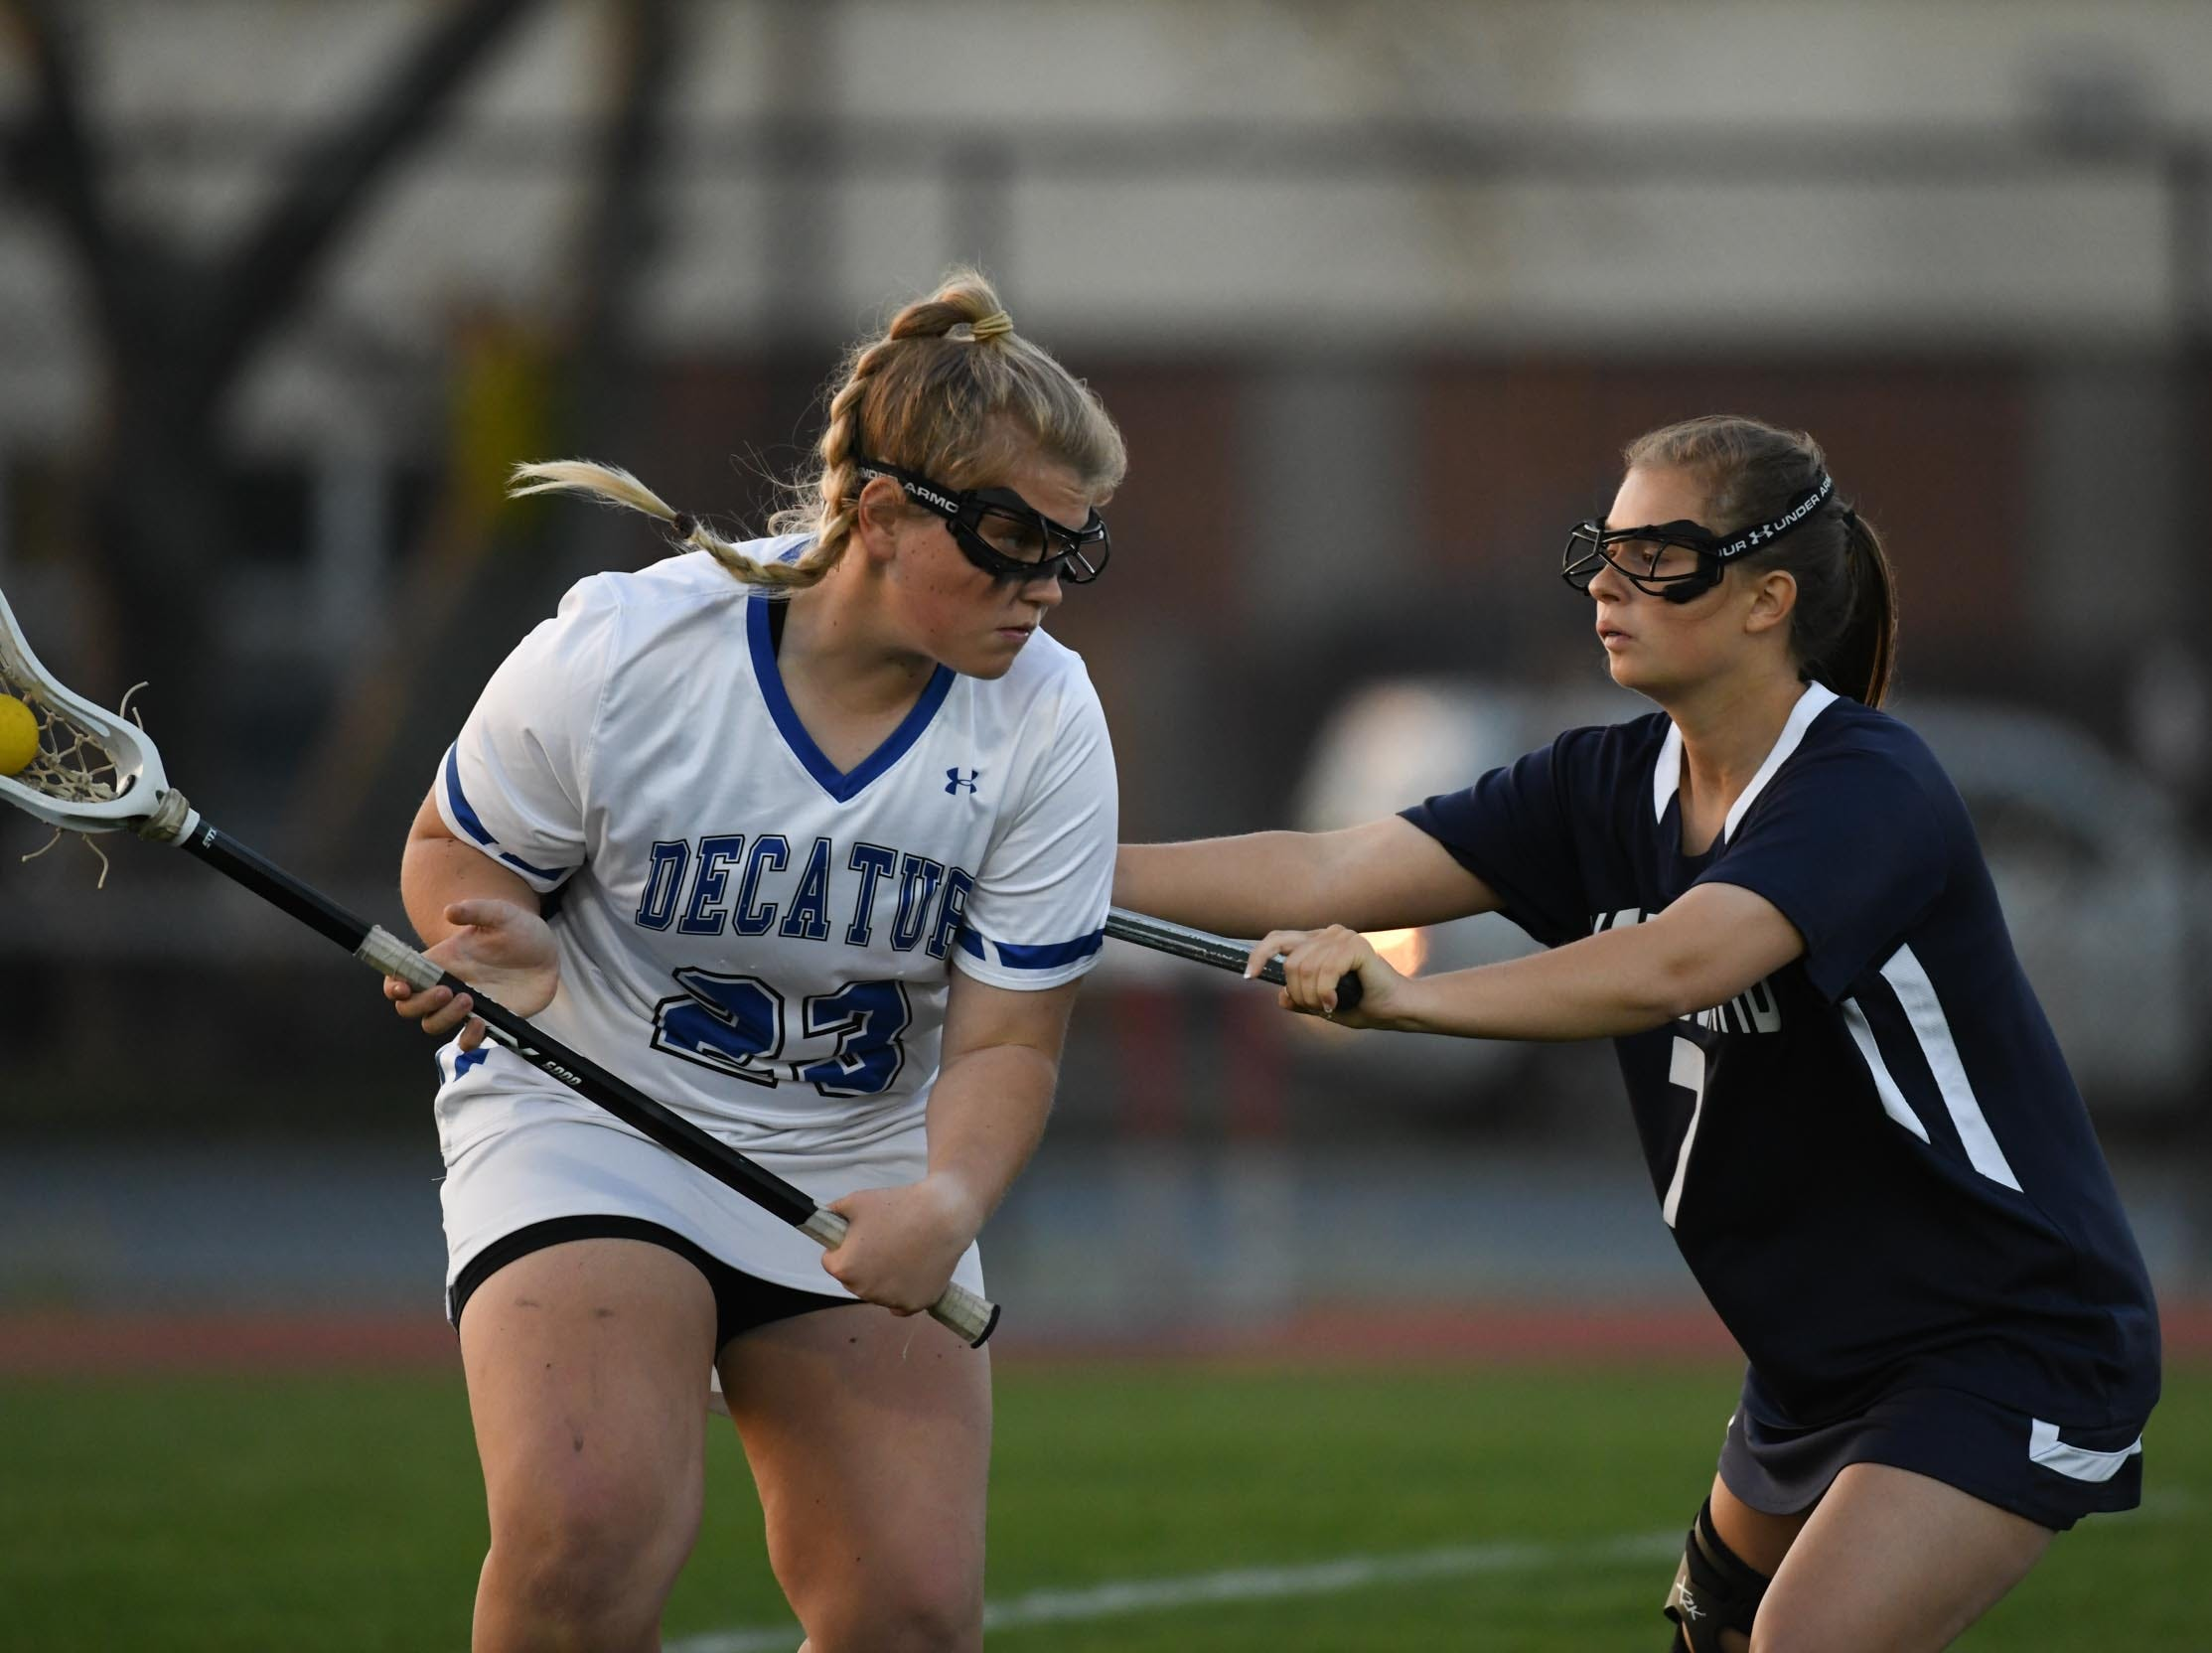 Stephen Decatur's Brittyn Lyra Leonard with the ball against Kent Island during the Bayside Championship on Monday, May 6, 2019 at Wicomico County Stadium in Salisbury, Md.